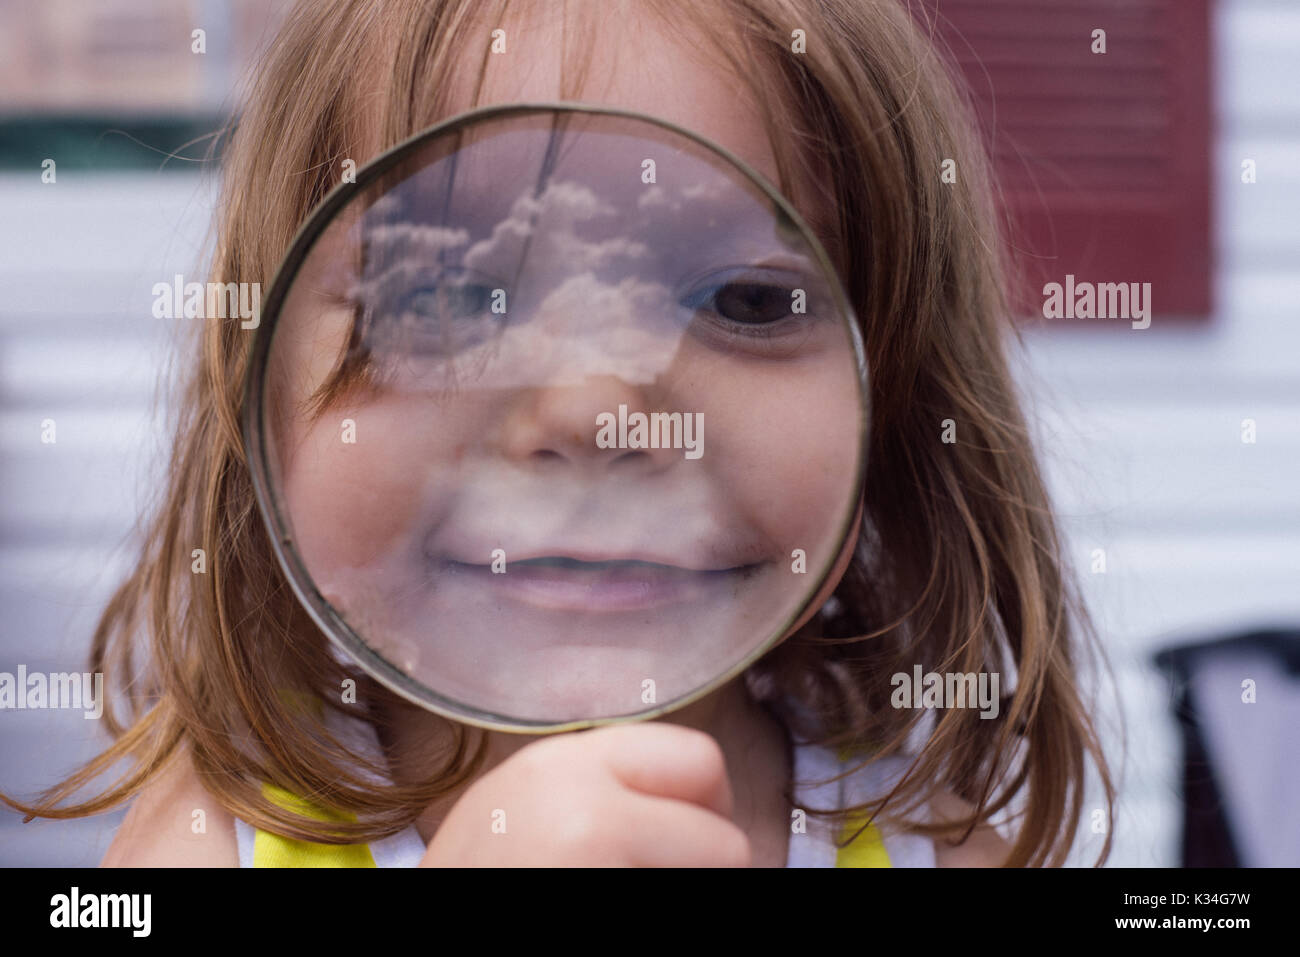 A young girl looks through a circular magnifying glass. - Stock Image